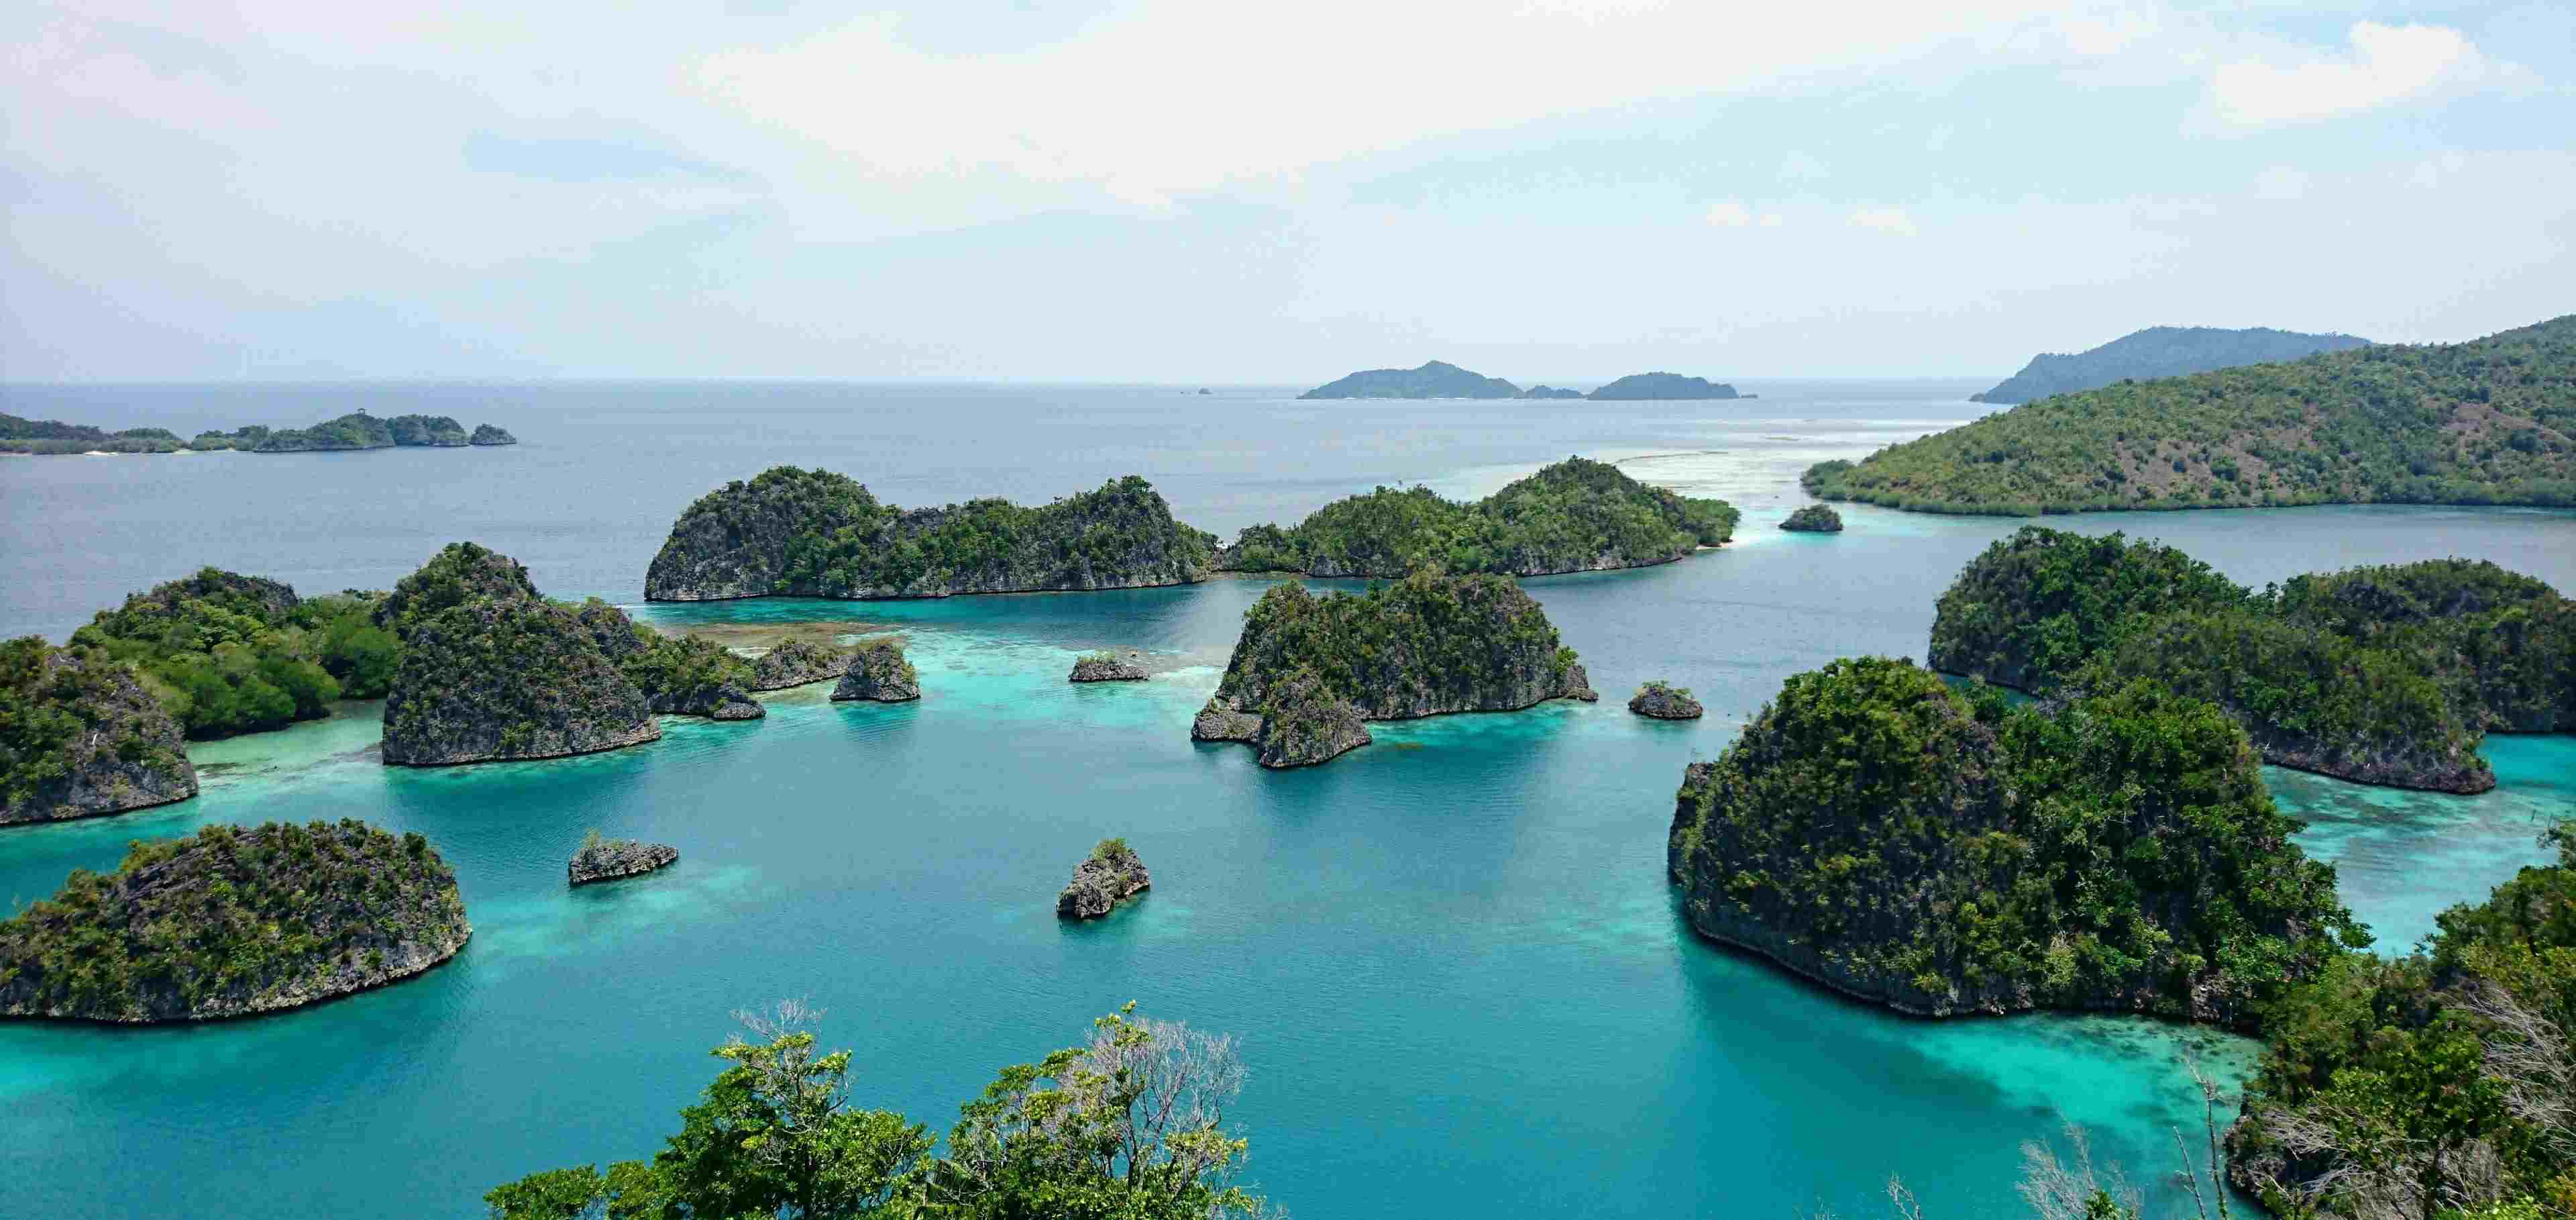 5 reasons why Raja Ampat should be on your bucket list